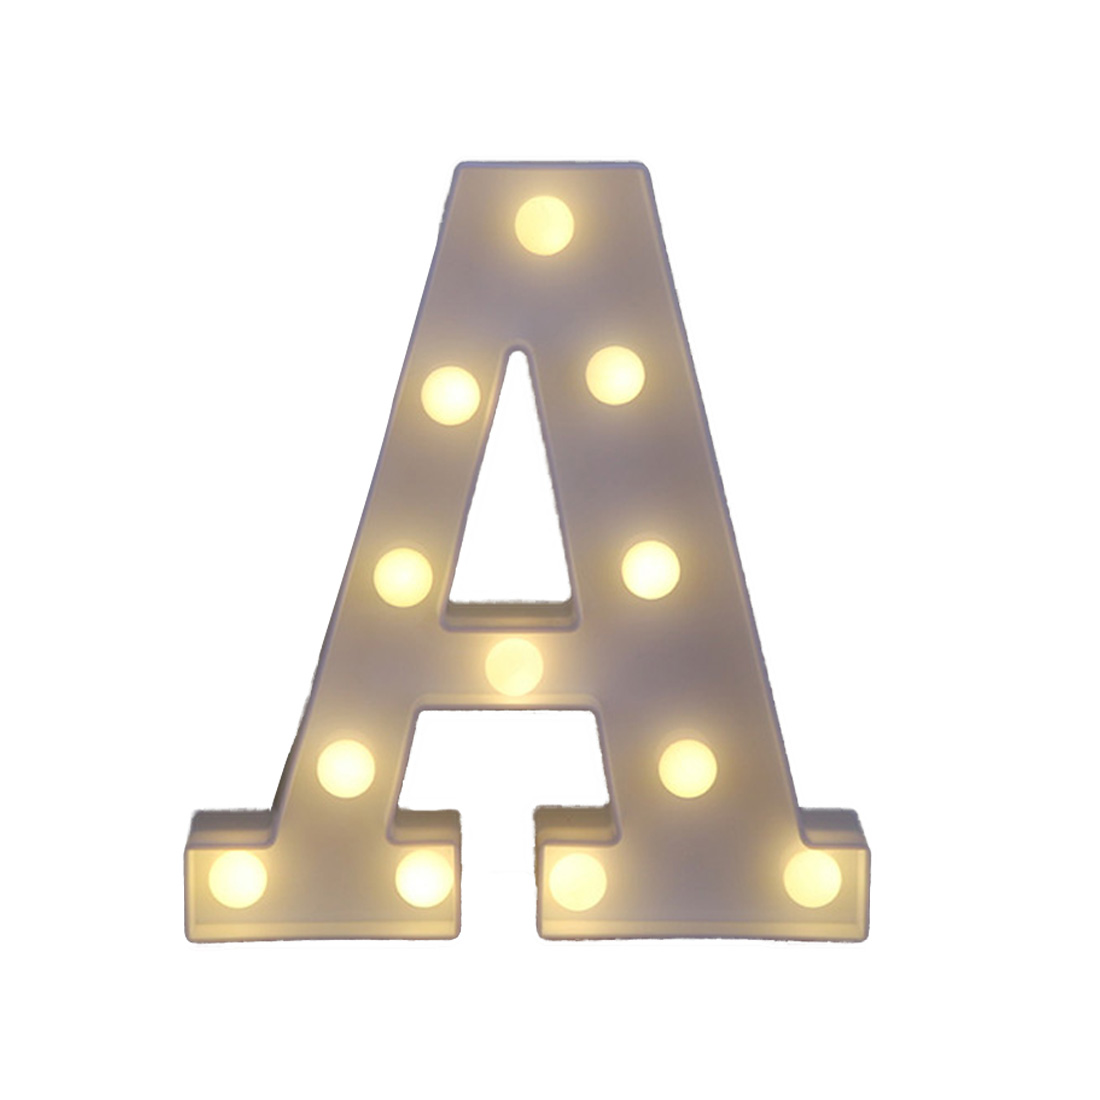 Fun White Plastic Letter LED Night Light Marquee Sign Alphabet Lights Lamp Home Club Outdoor Indoor Wall Decoration best price led night light lamp kids marquee letter light vintage alphabet circus style light up christmas lamp white 12inch